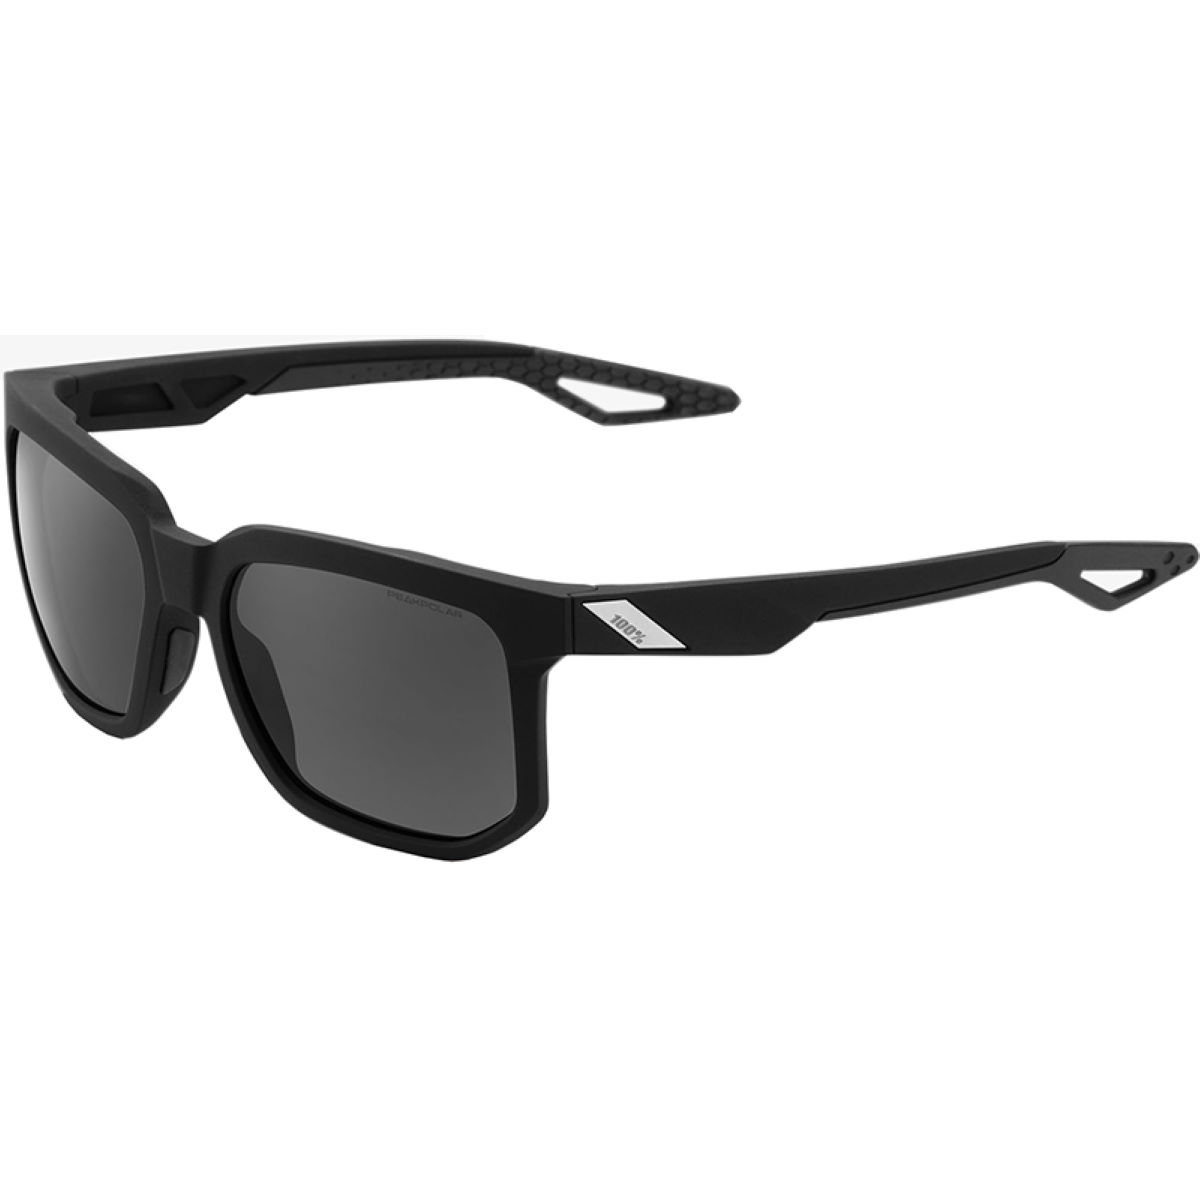 100% Centric Sunglasses - One Size Soft Tact Black - Gr  Sunglasses